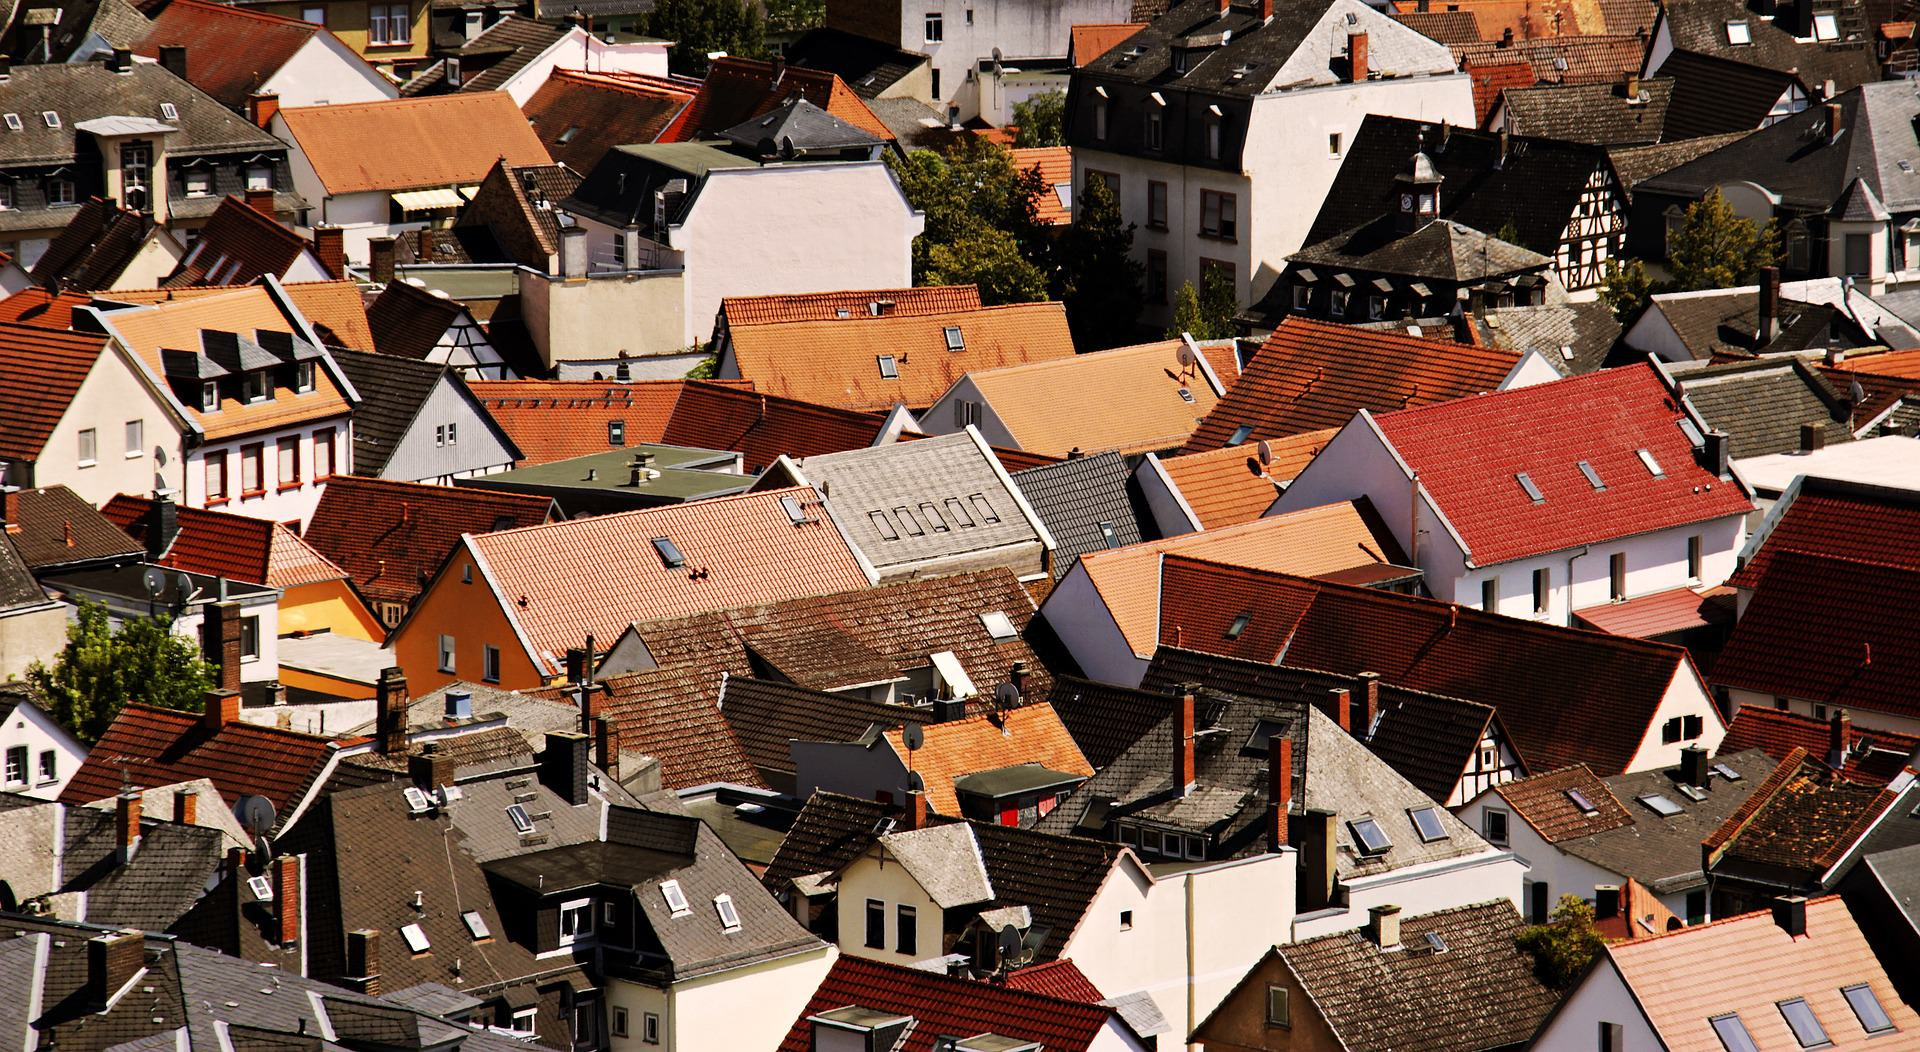 An image of carious roofs from a birds-eye view.